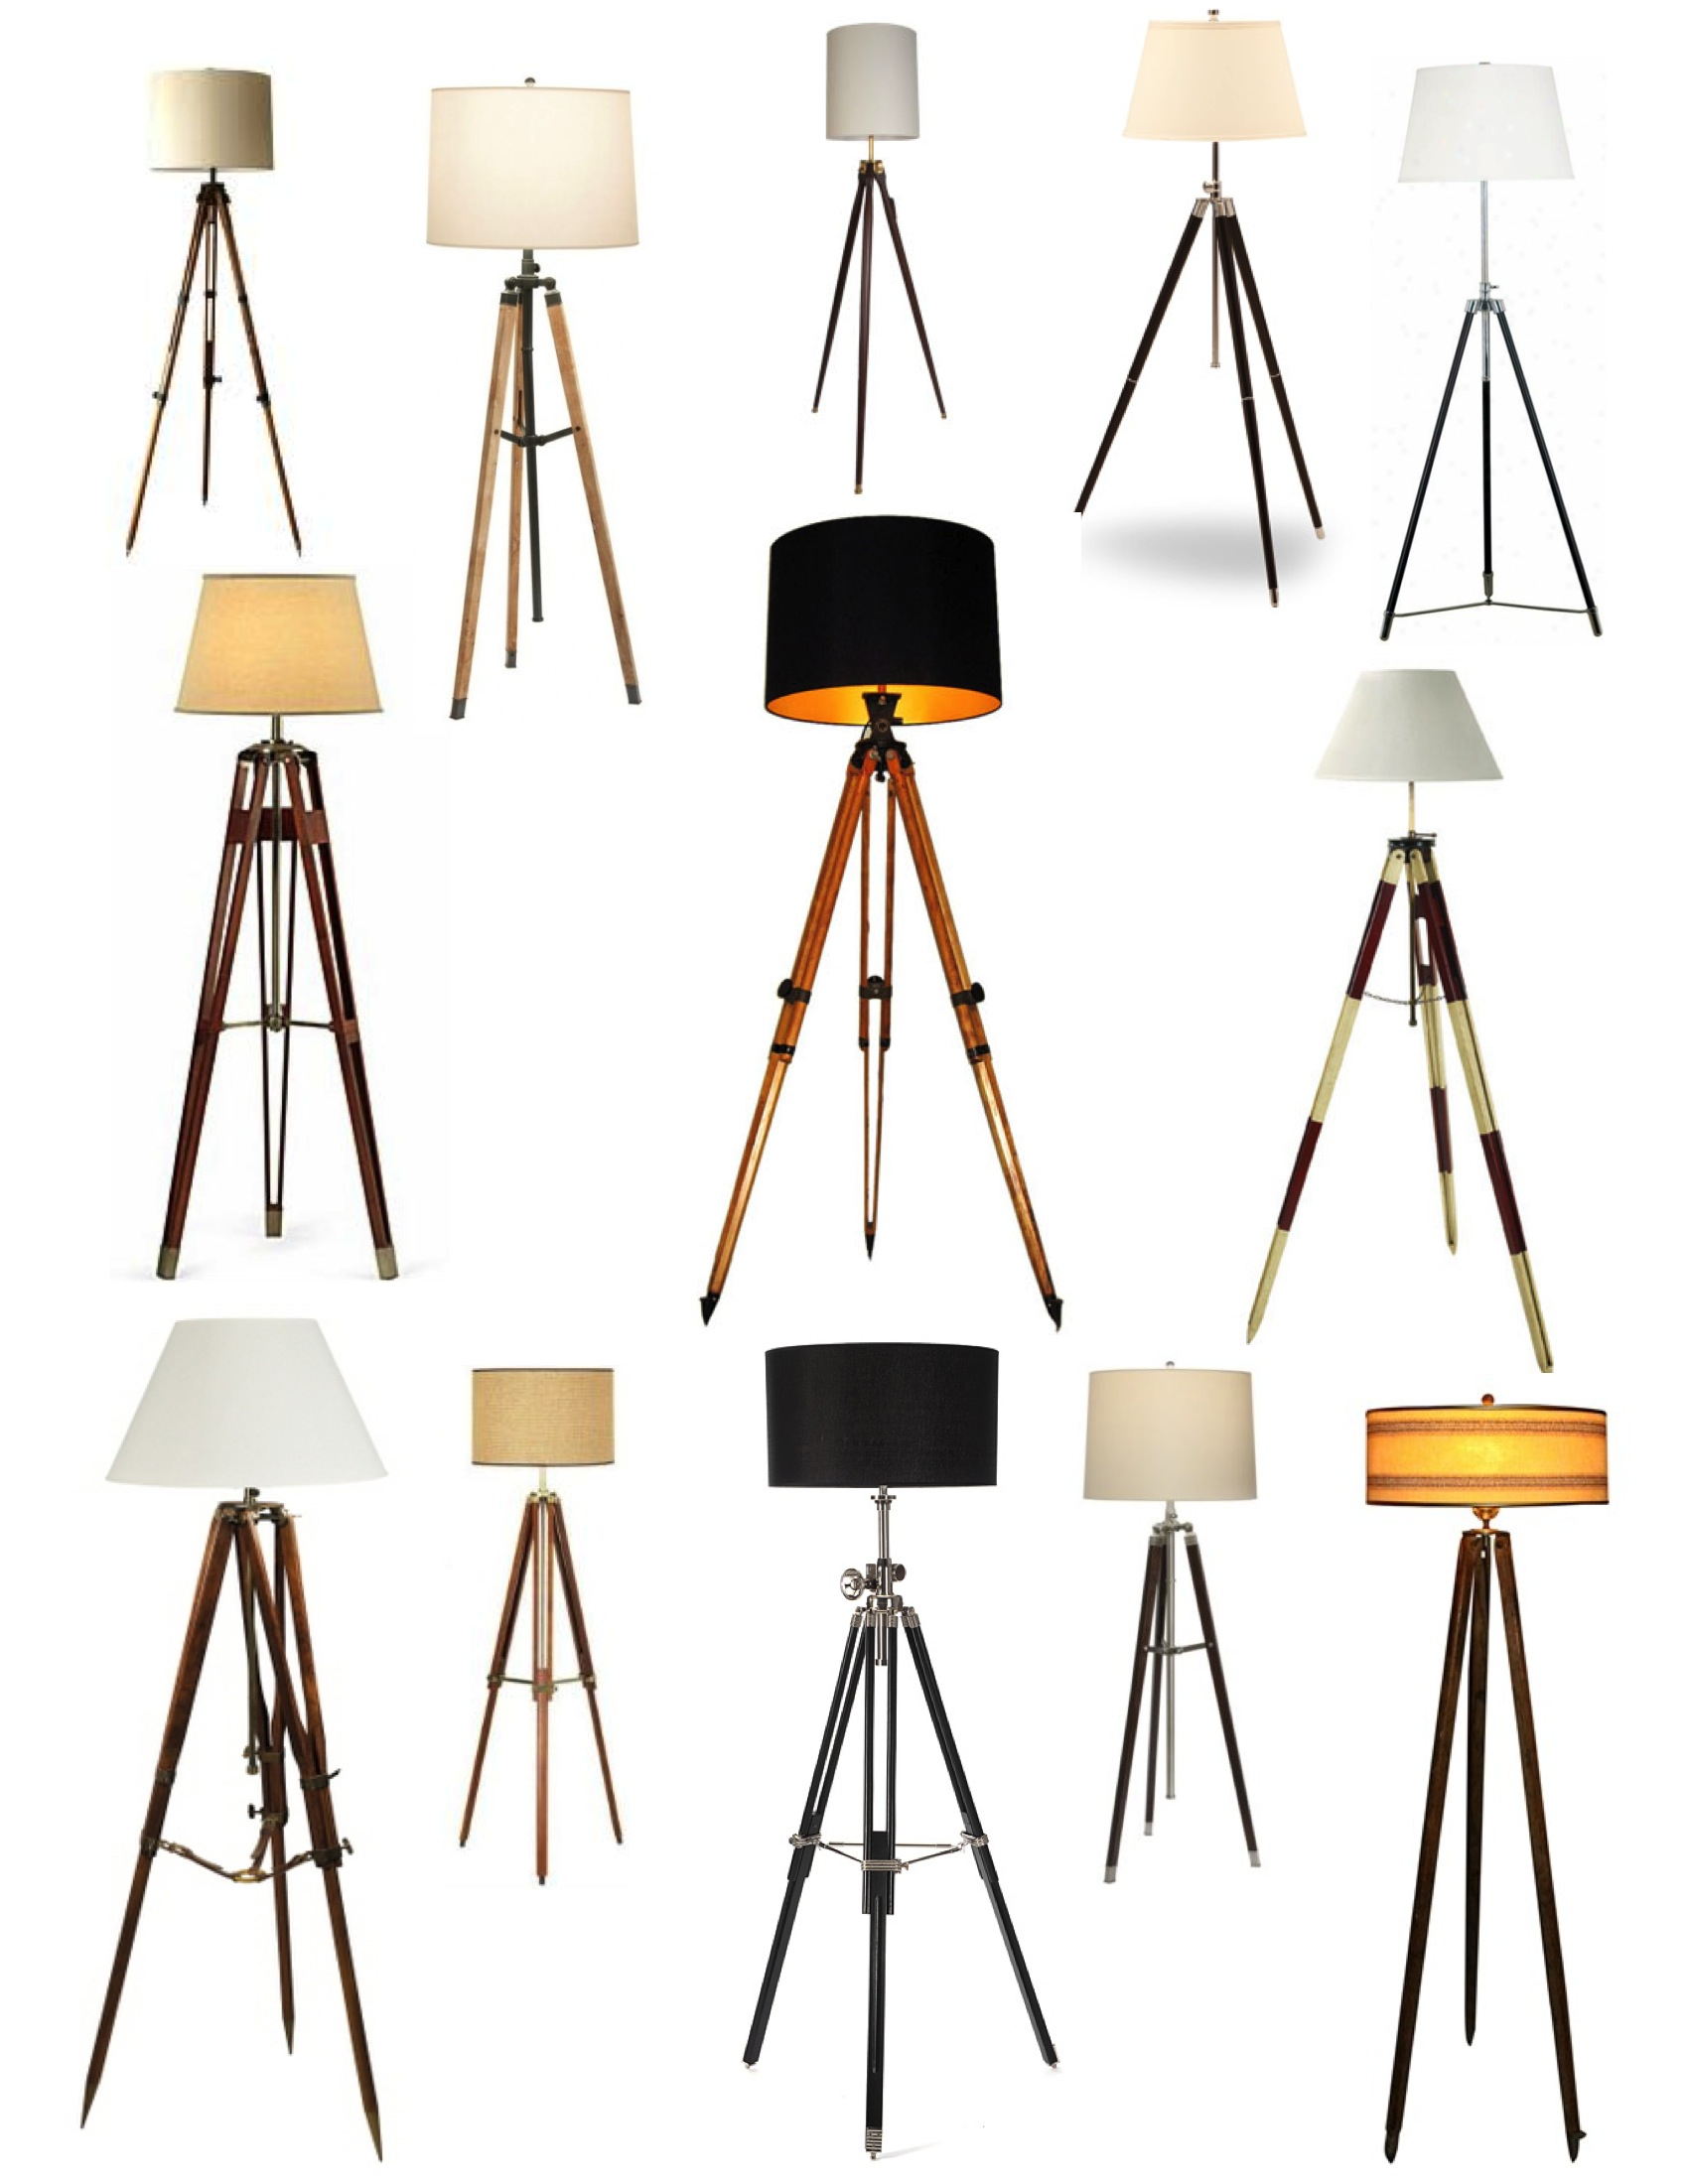 Tripod Floor Lamp | Tripod Lamp | Surveyor Floor Lamp